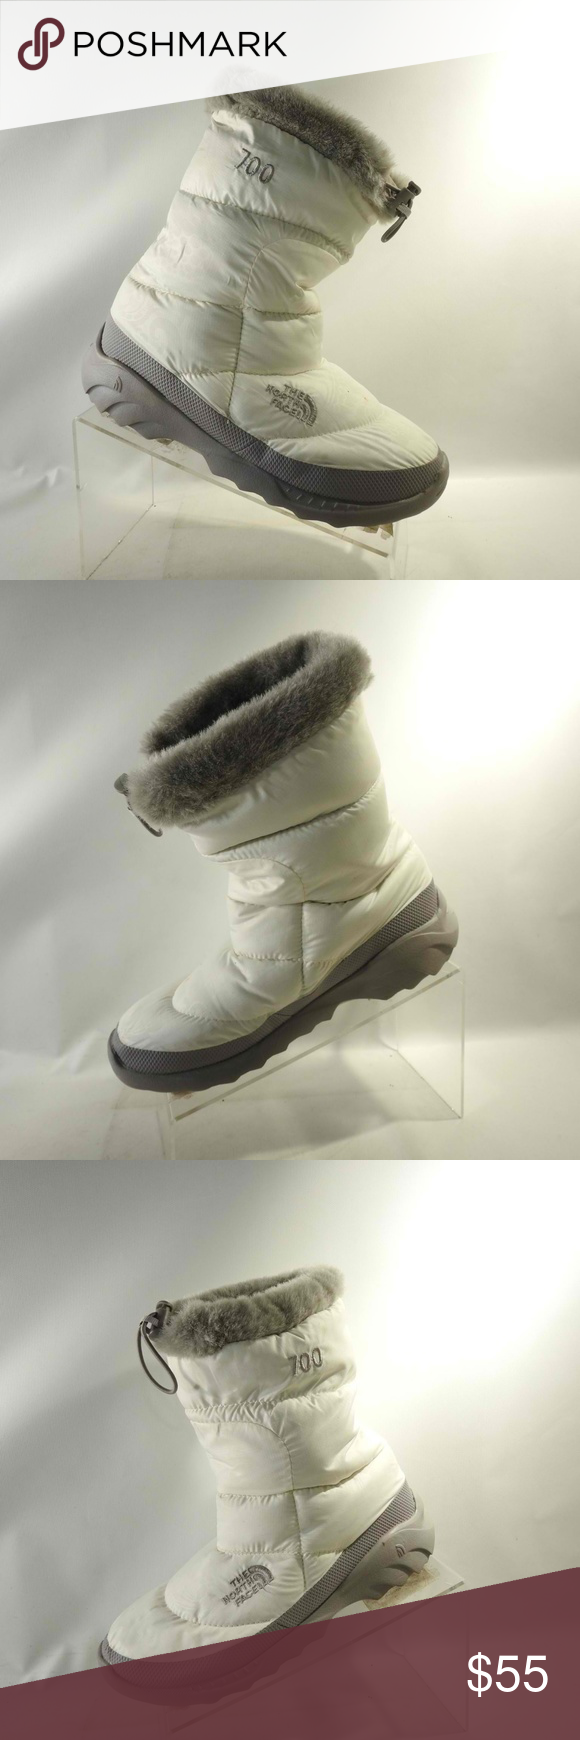 87a07e2a4 The North Face 700 Sz8 White Boots Shoes For Women The North Face ...